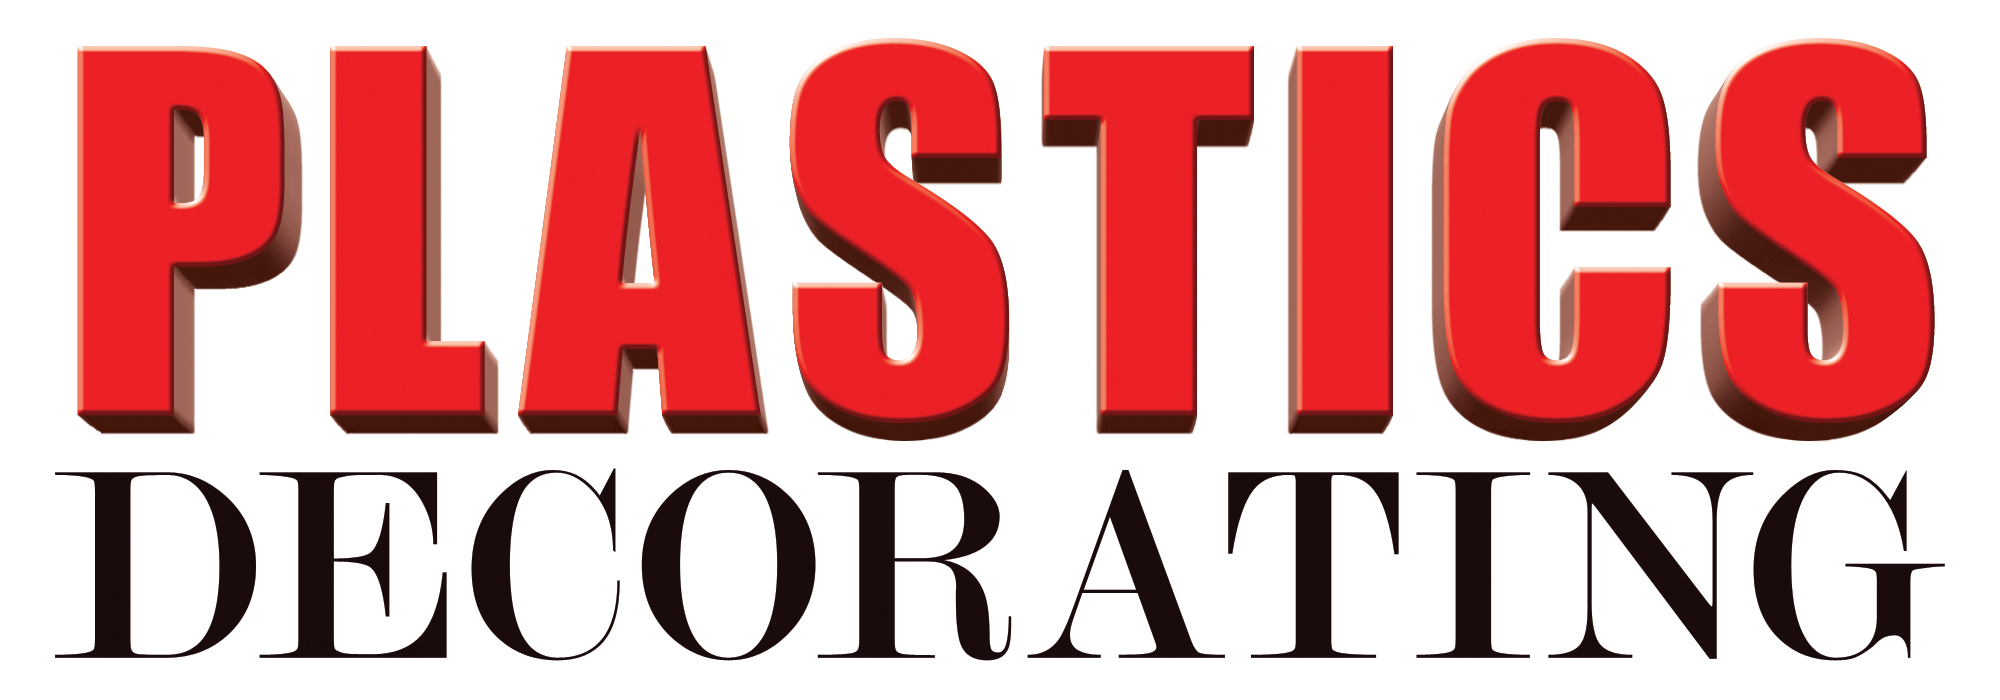 PlasticsDecorating_logo